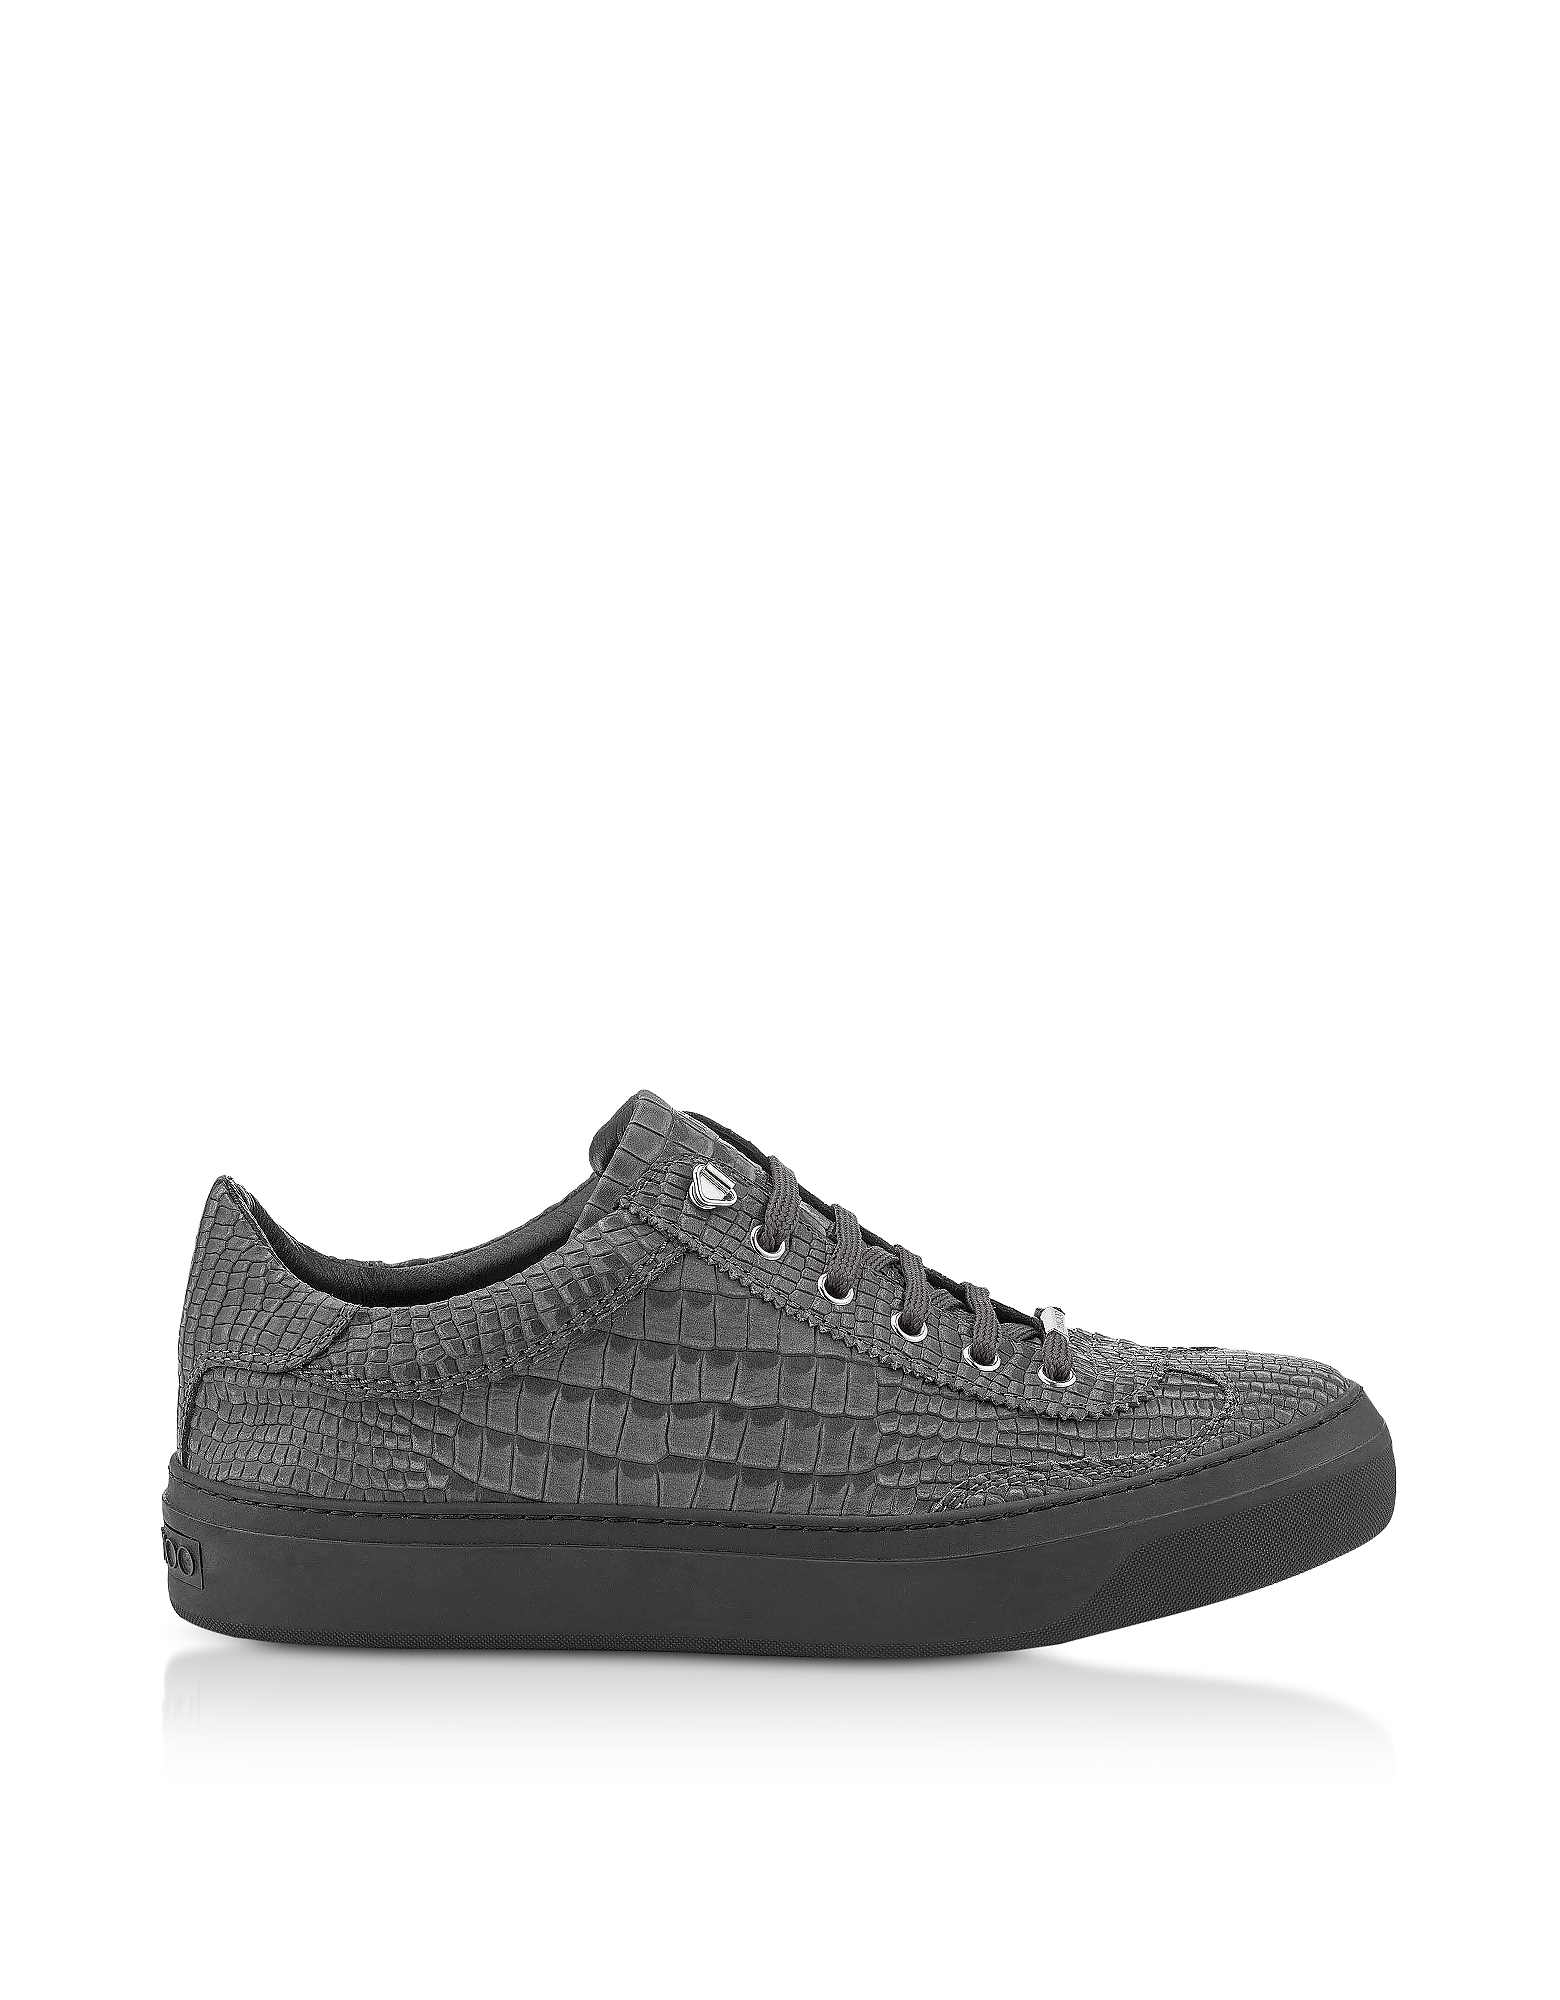 Jimmy Choo Shoes, Ace CTK Slate Croco Embossed Nubuck Low Top Men's Sneakers